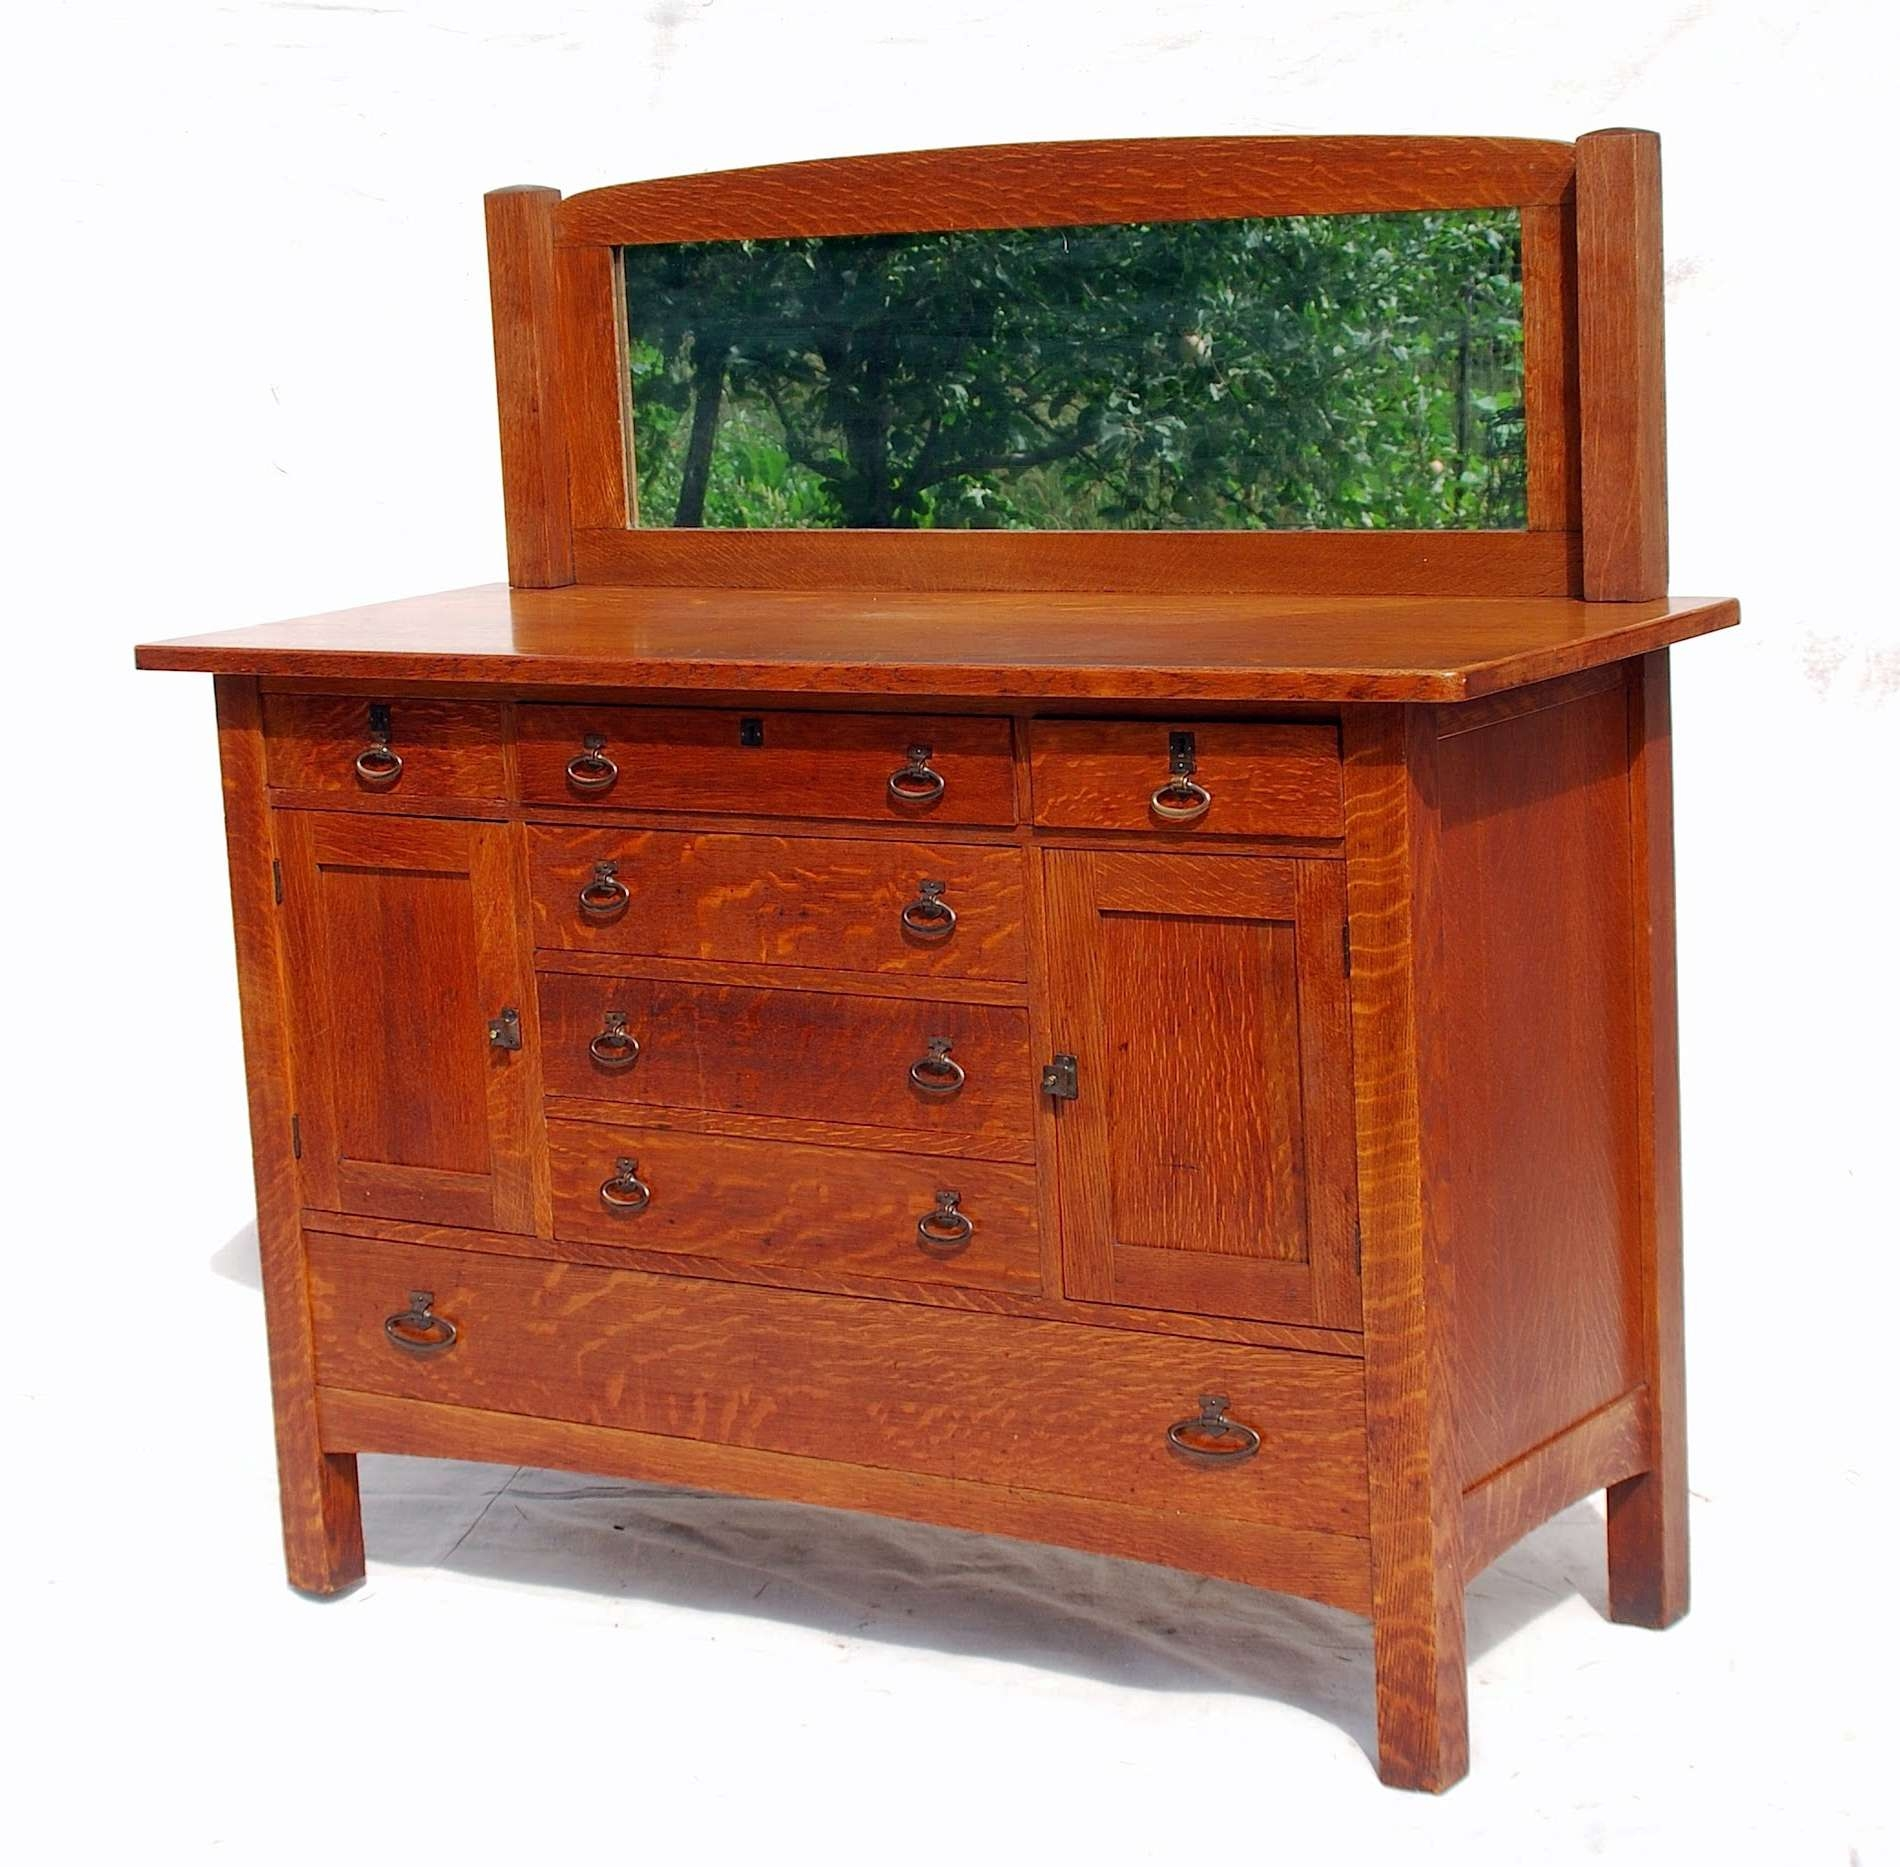 Voorhees Craftsman Mission Oak Furniture – Limbert Mirror Backed For Small Mirrored Sideboards (Gallery 16 of 20)